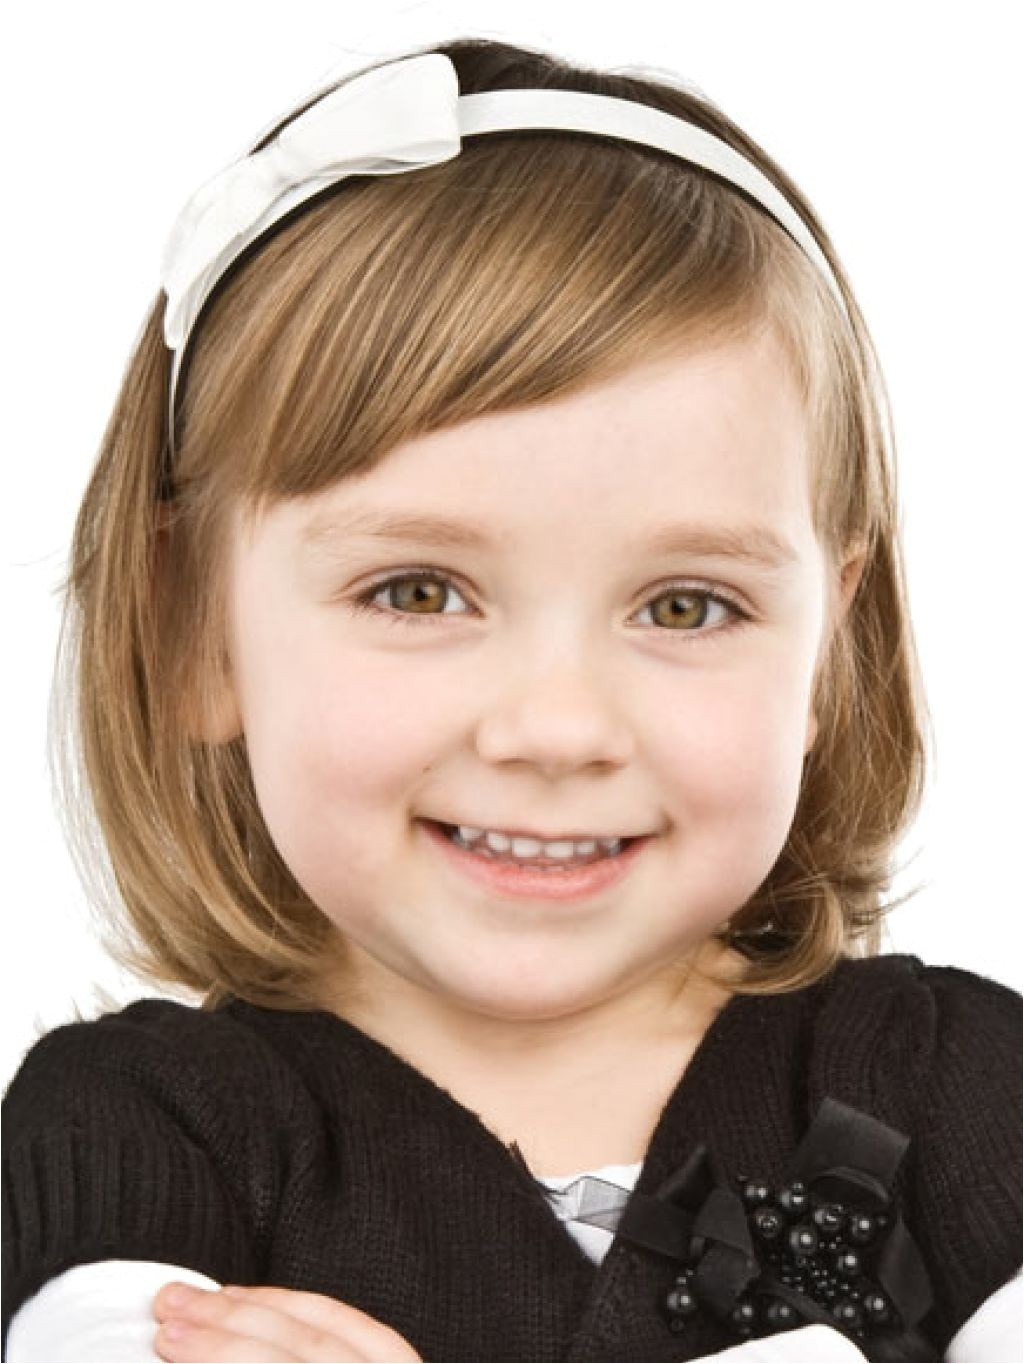 Short Hairstyles for Little Girls with Thick Hair Image Result for Little Girls Short Haircut